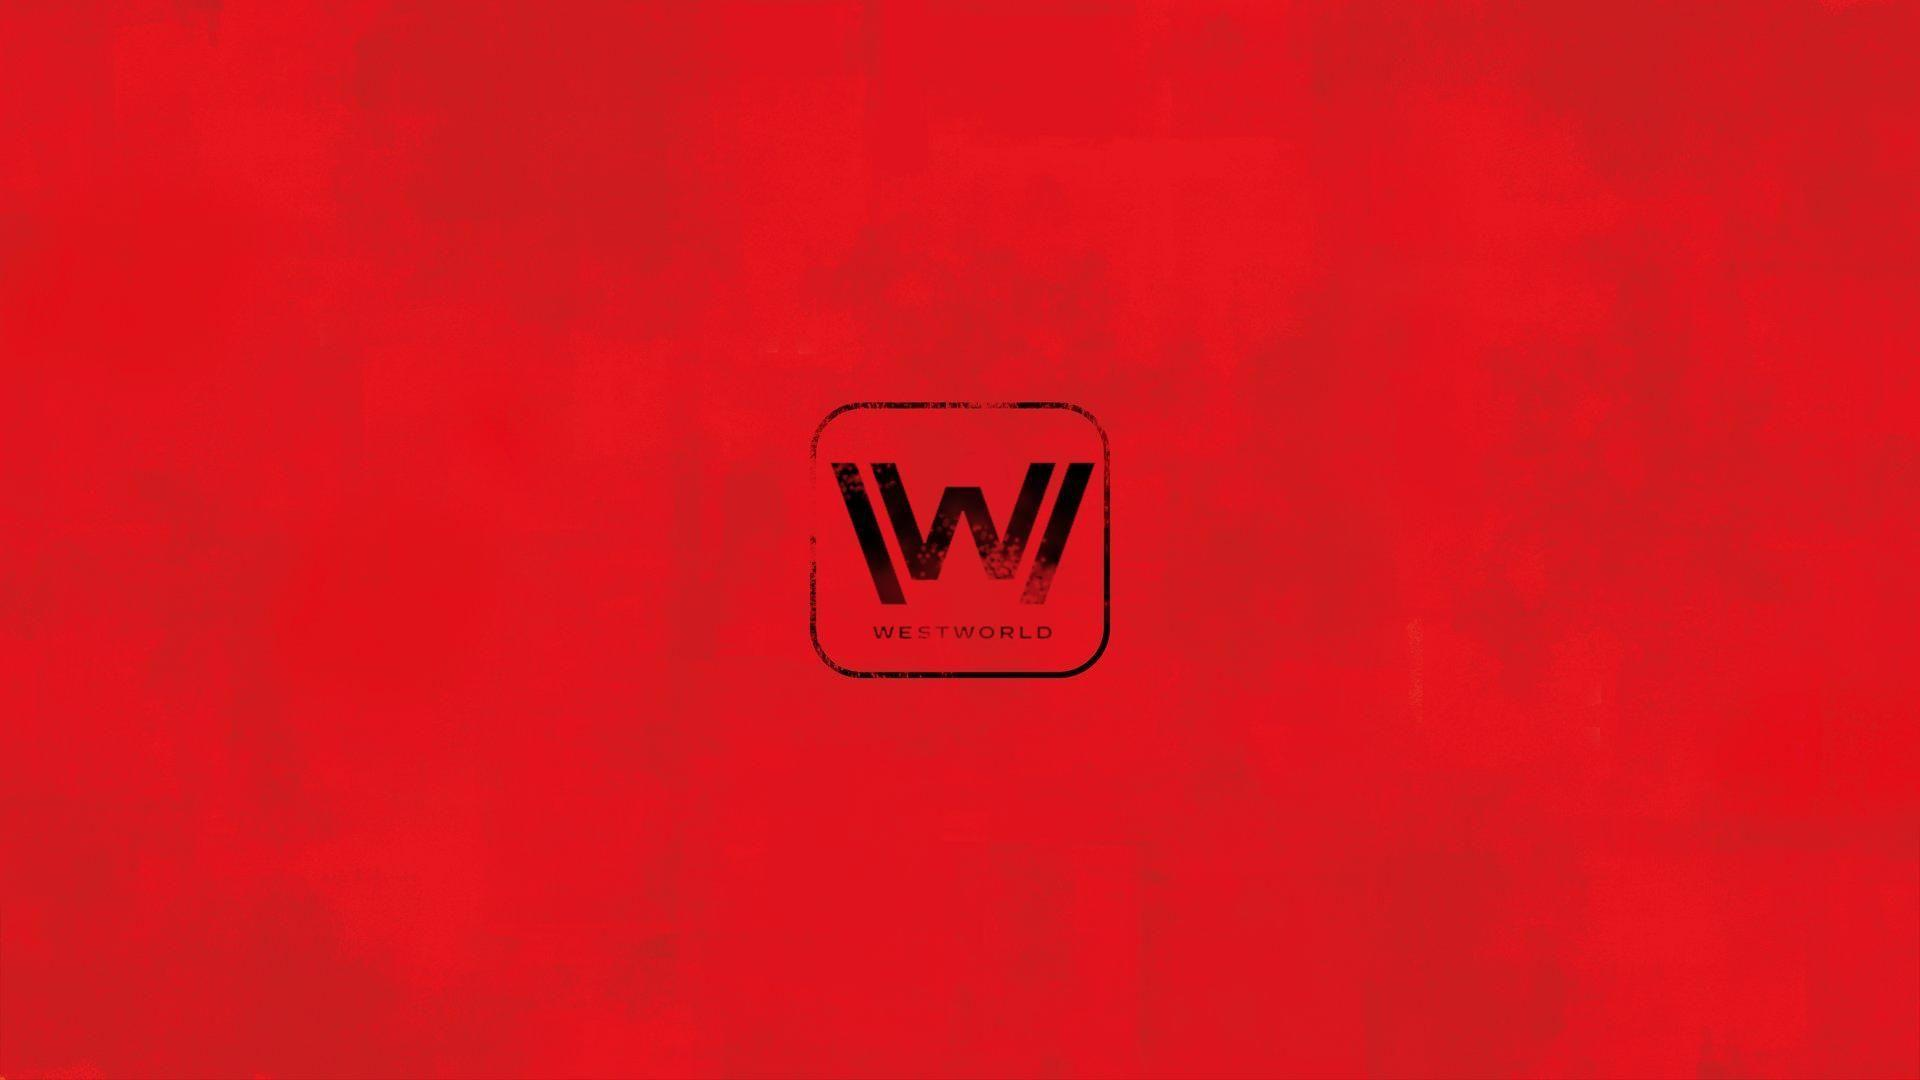 Westworld : wallpapers